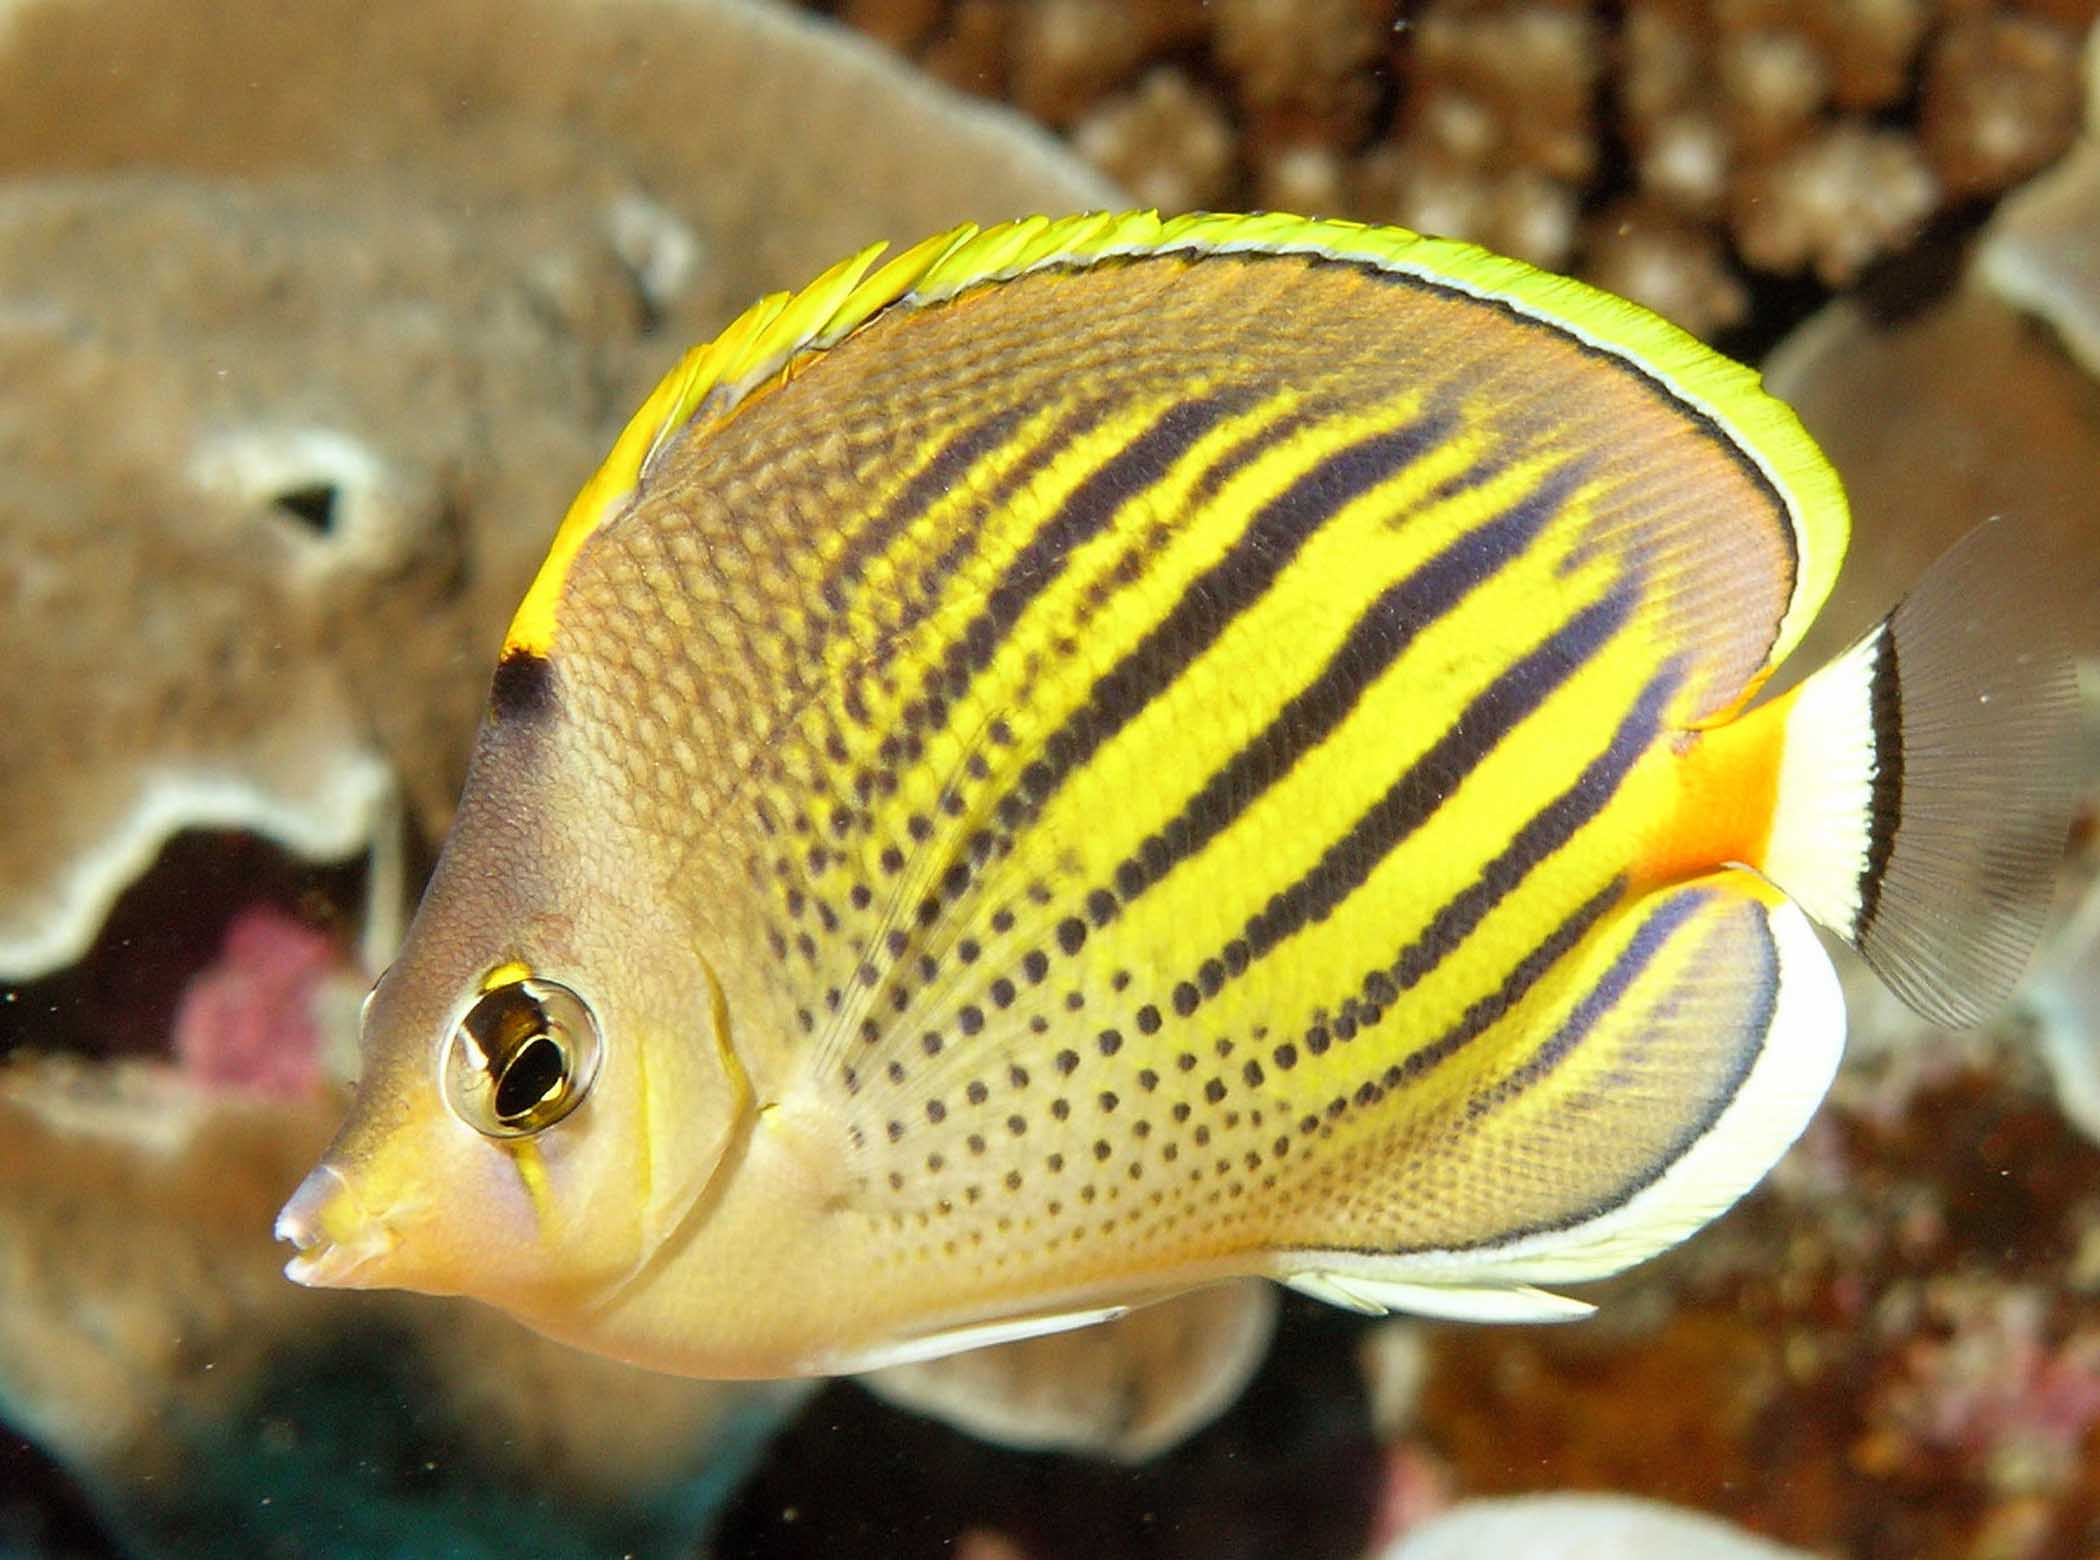 The spot-banded butterfly fish is found in the coral-rich reefs of Tahiti.